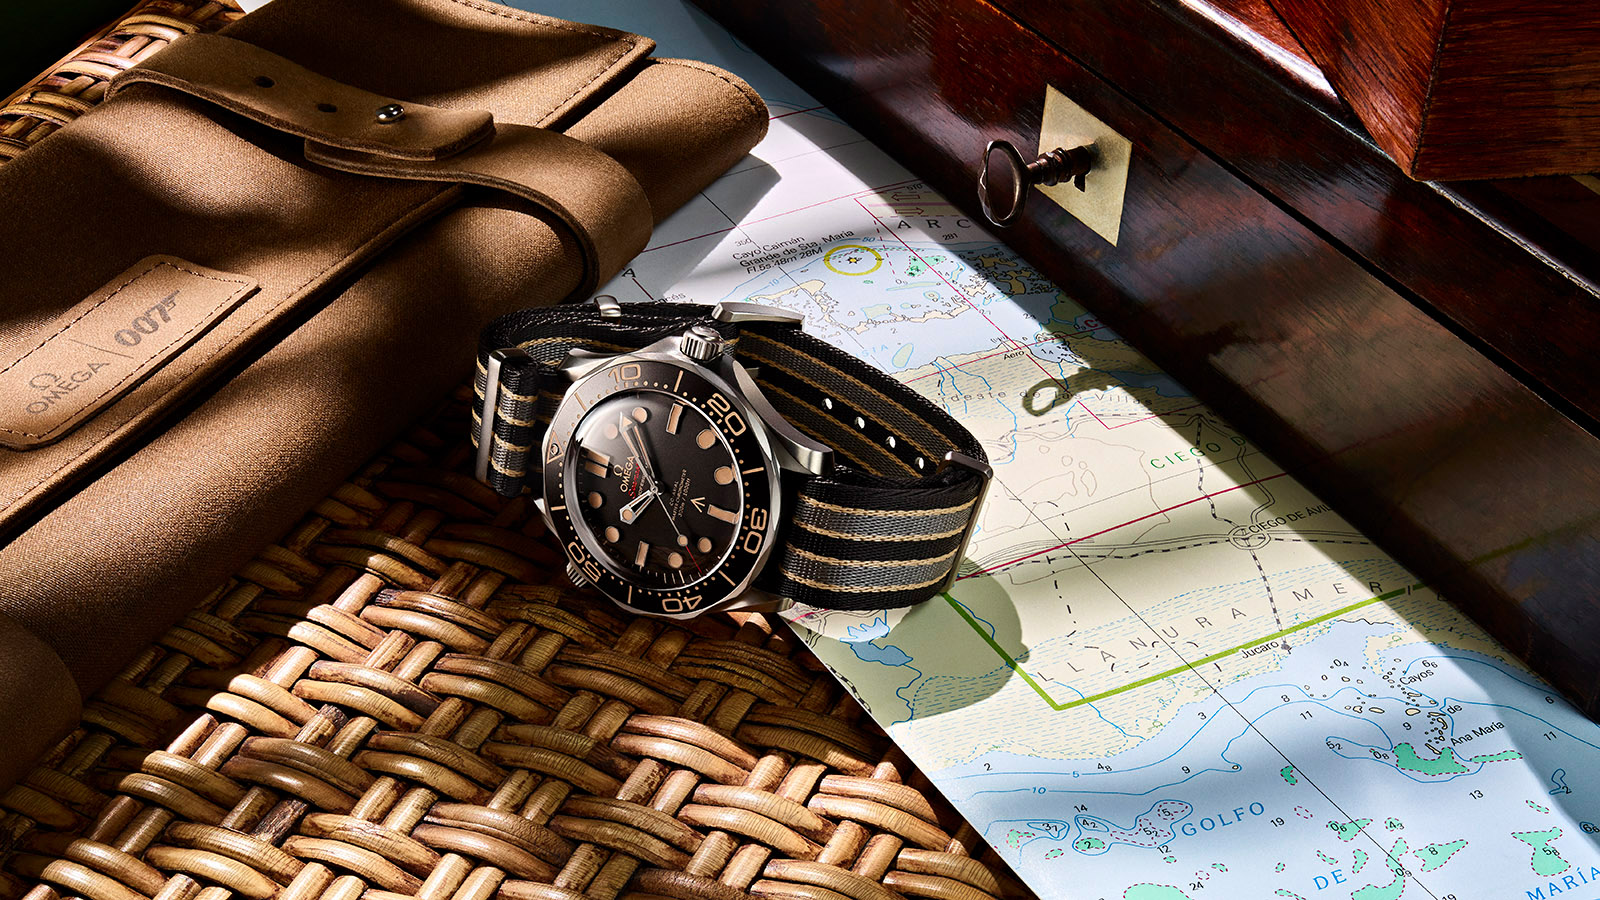 Omega Seamaster Diver 300M 007 No Time To Die